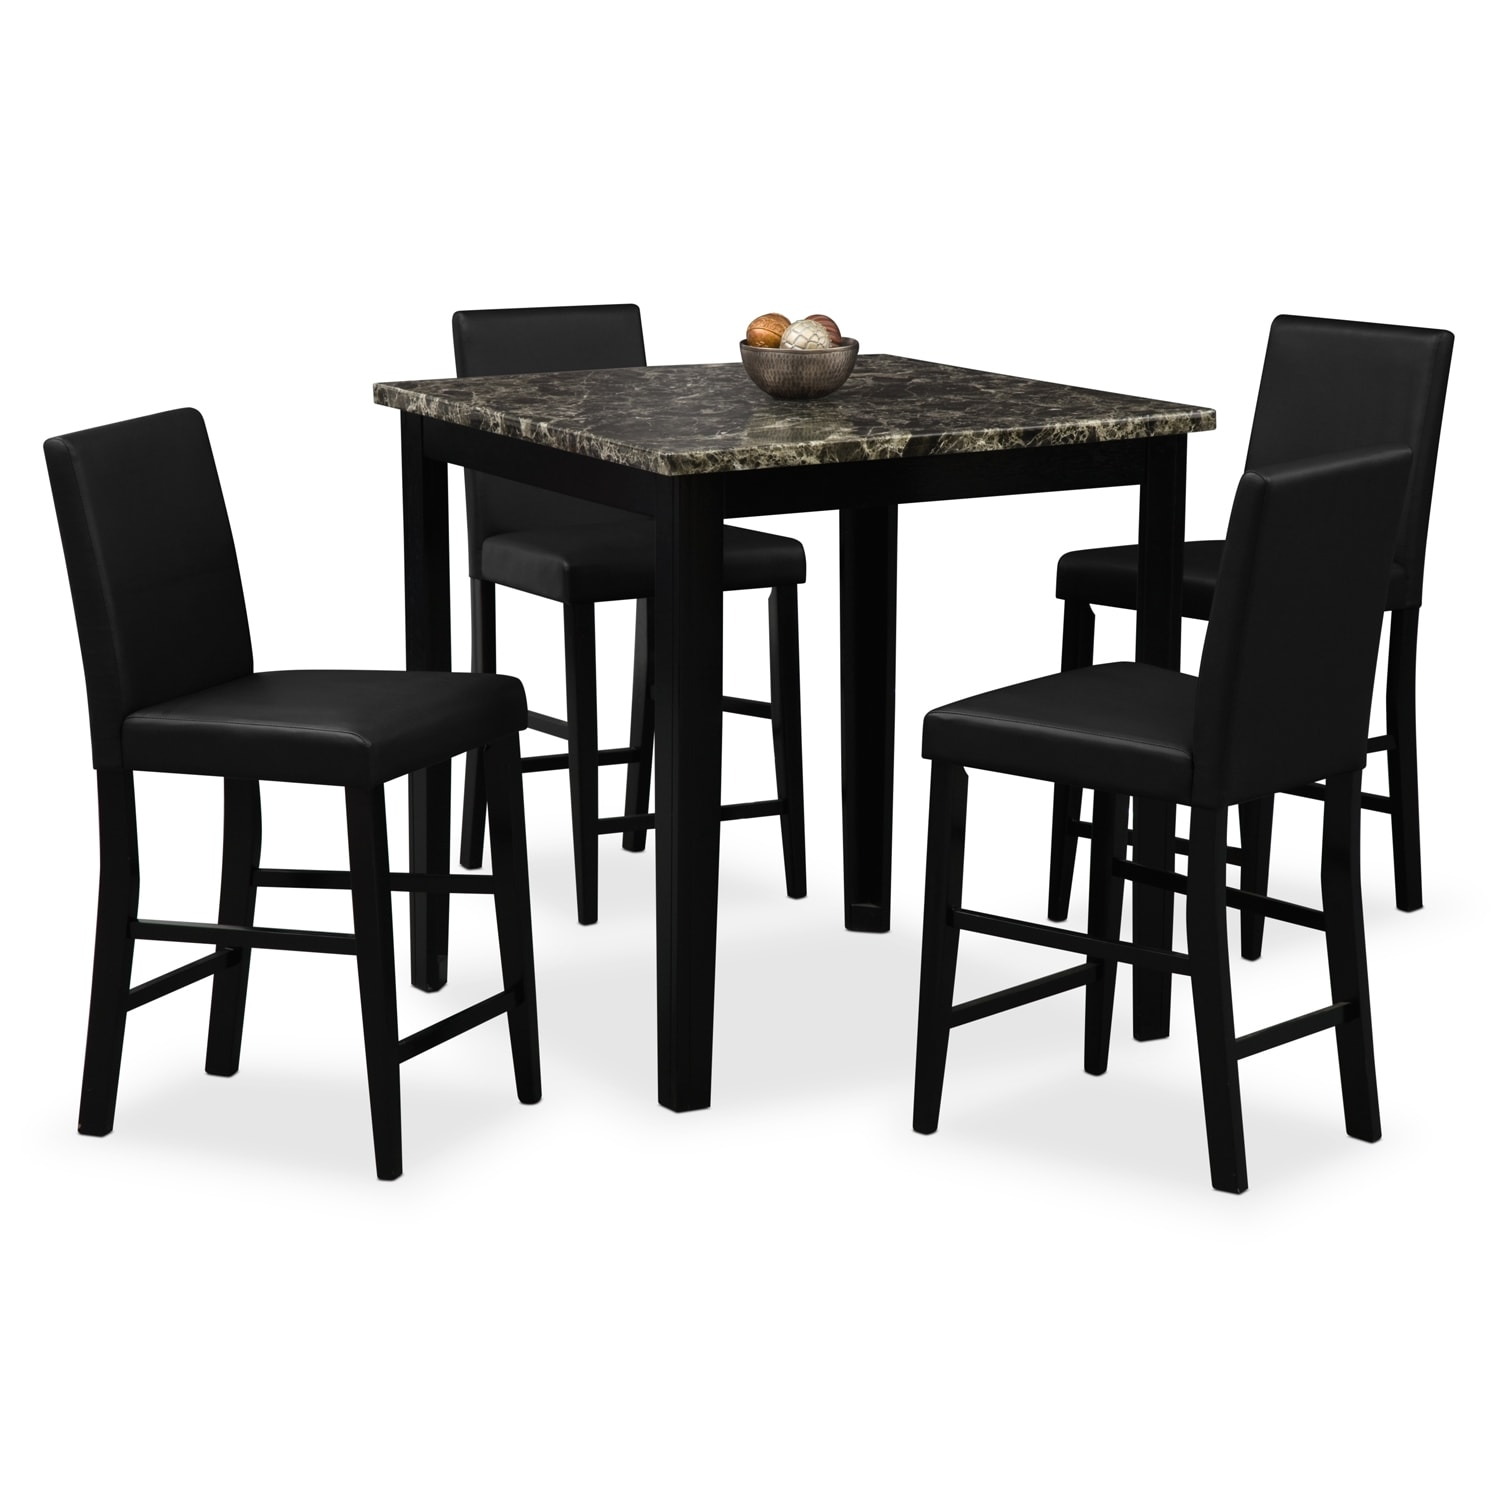 Shadow counter height table and 4 chairs black value for 4 dining room table